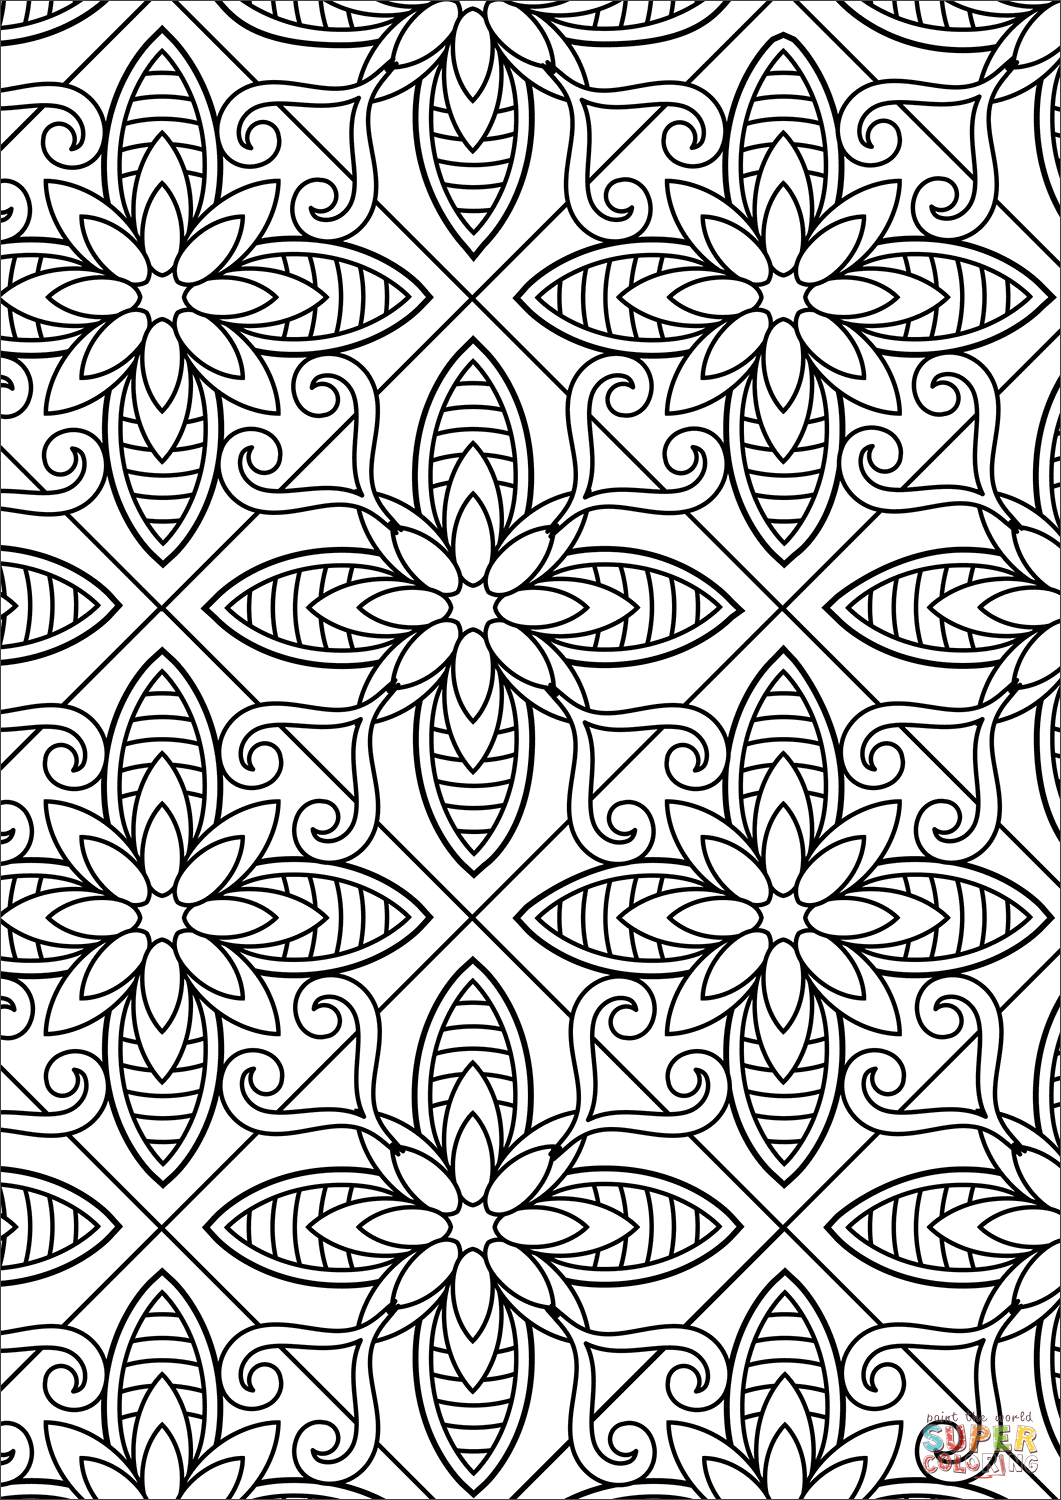 coloring patterns beautiful doodle floral pattern adult coloring pages printable coloring patterns